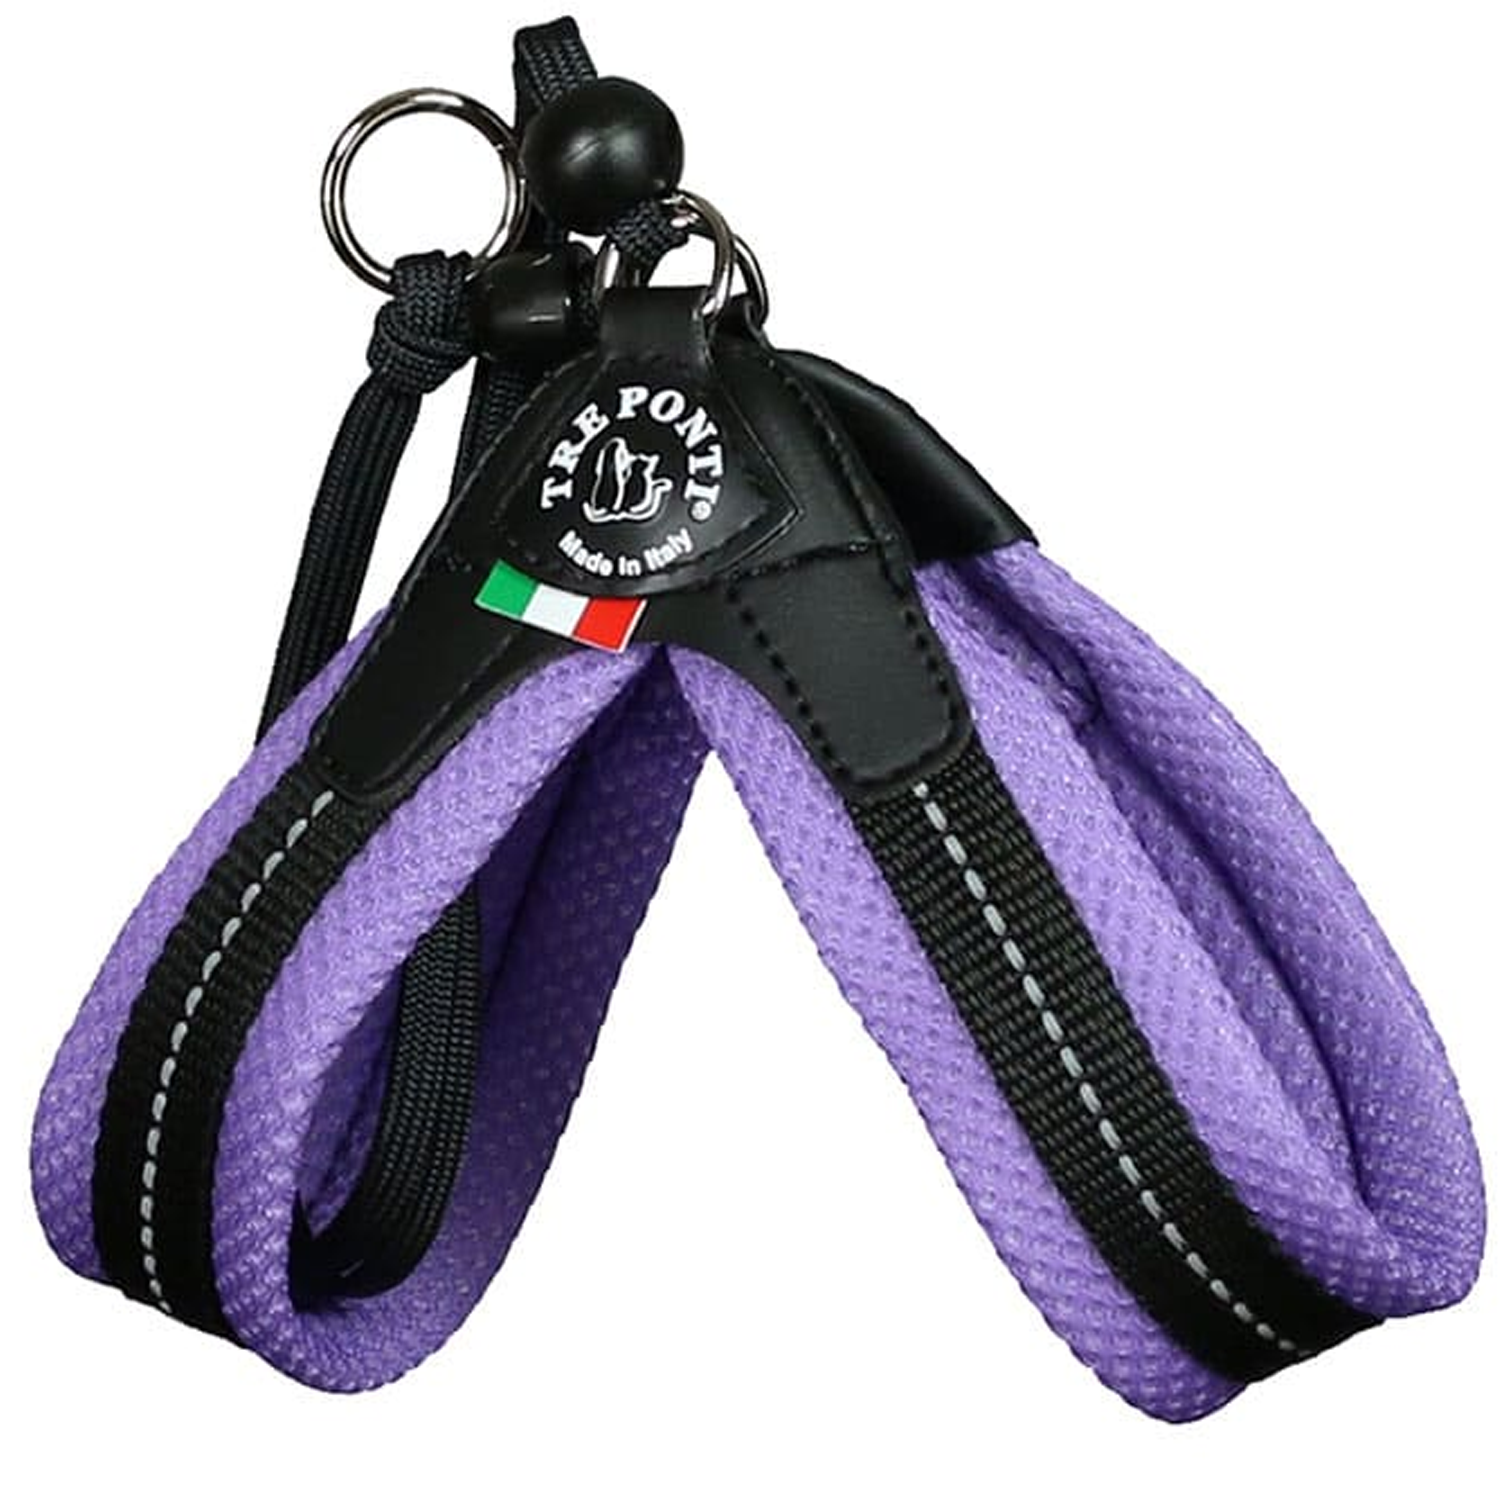 Lilac Mesh Strap Dog Harness